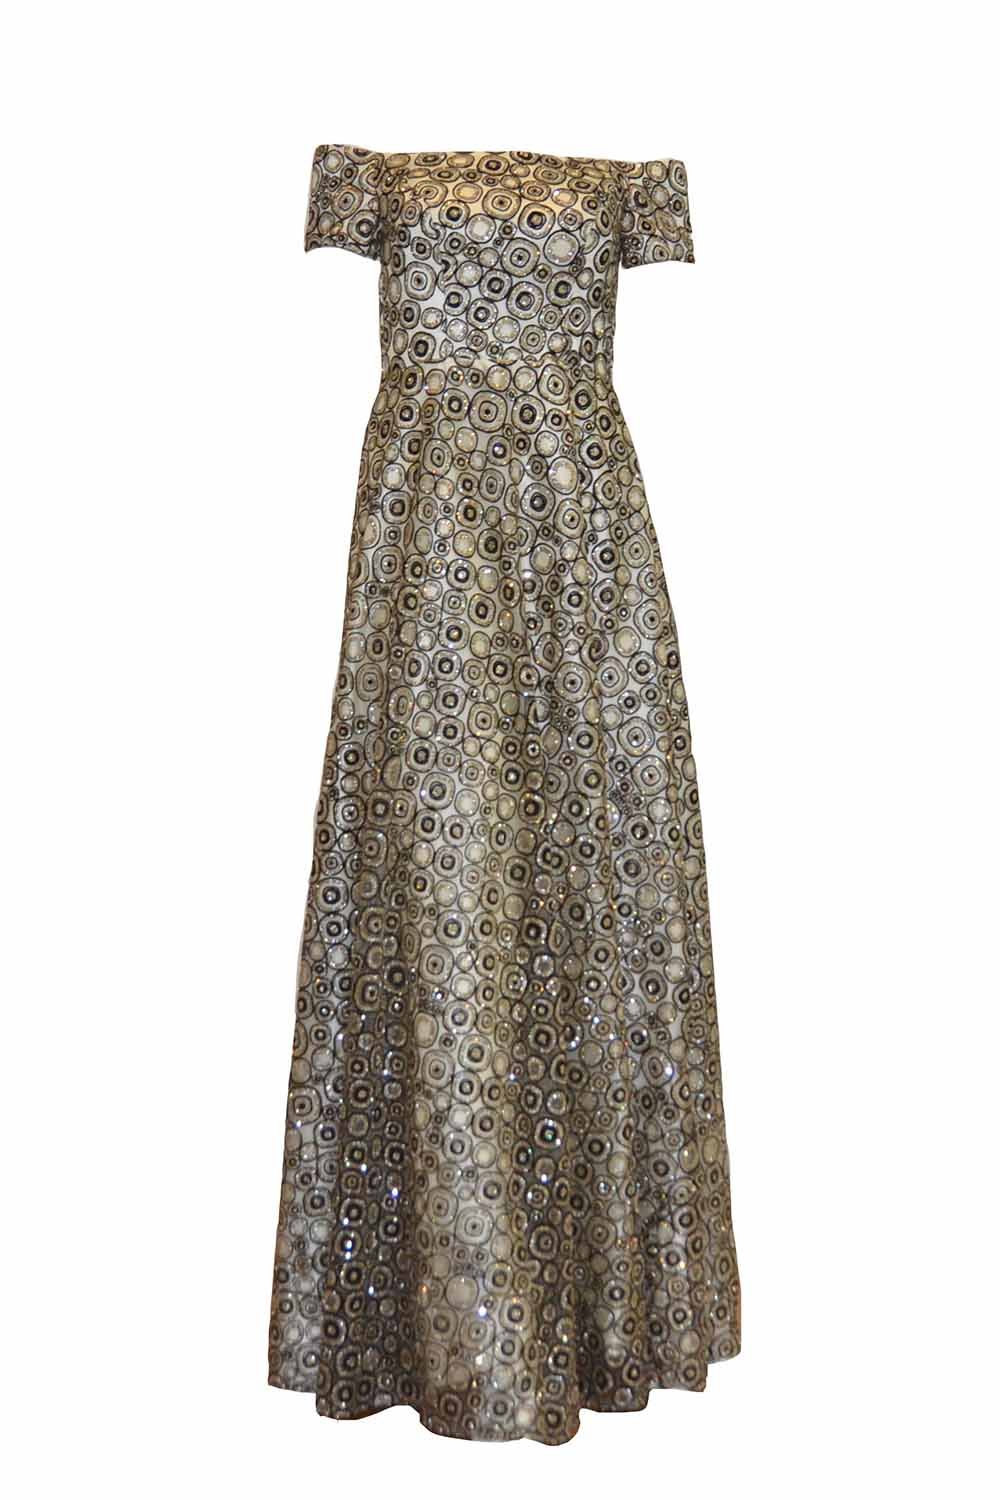 Rent: Mugen Fashion Golden Fully Embellished Sleeveless Gown